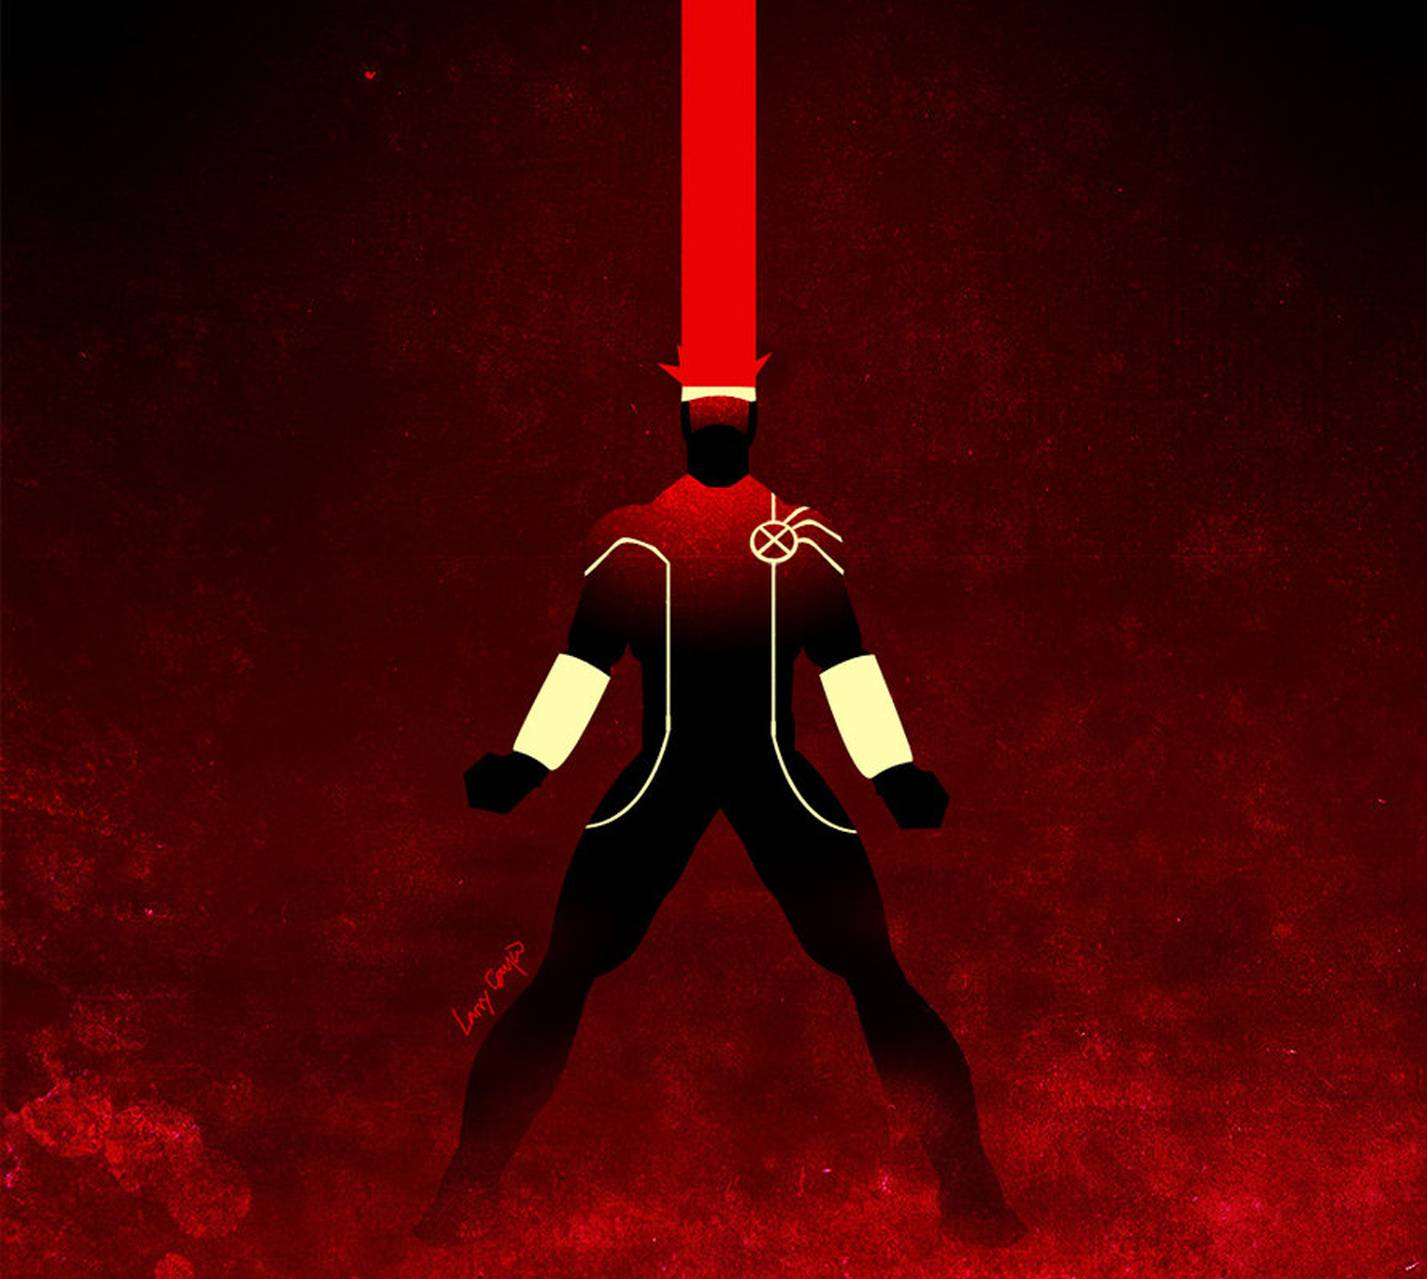 Cyclops Wallpaper By ZeusImages